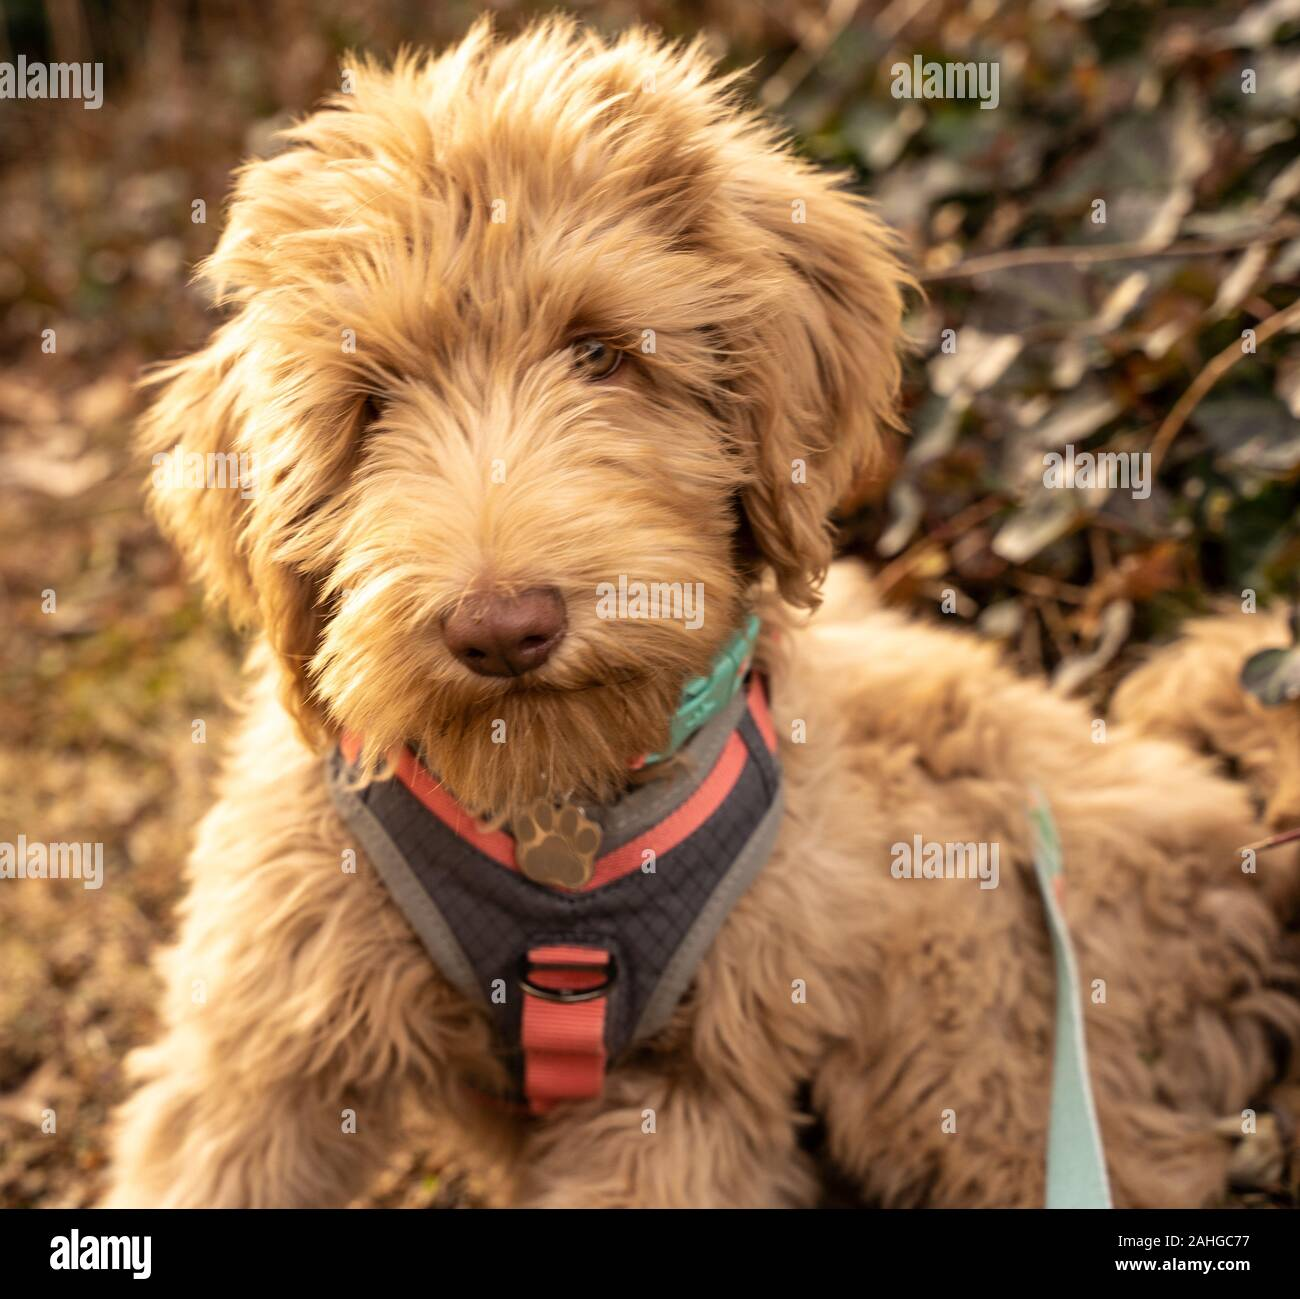 Adorable Goldendoodle Puppy Looking At Camera Stock Photo Alamy